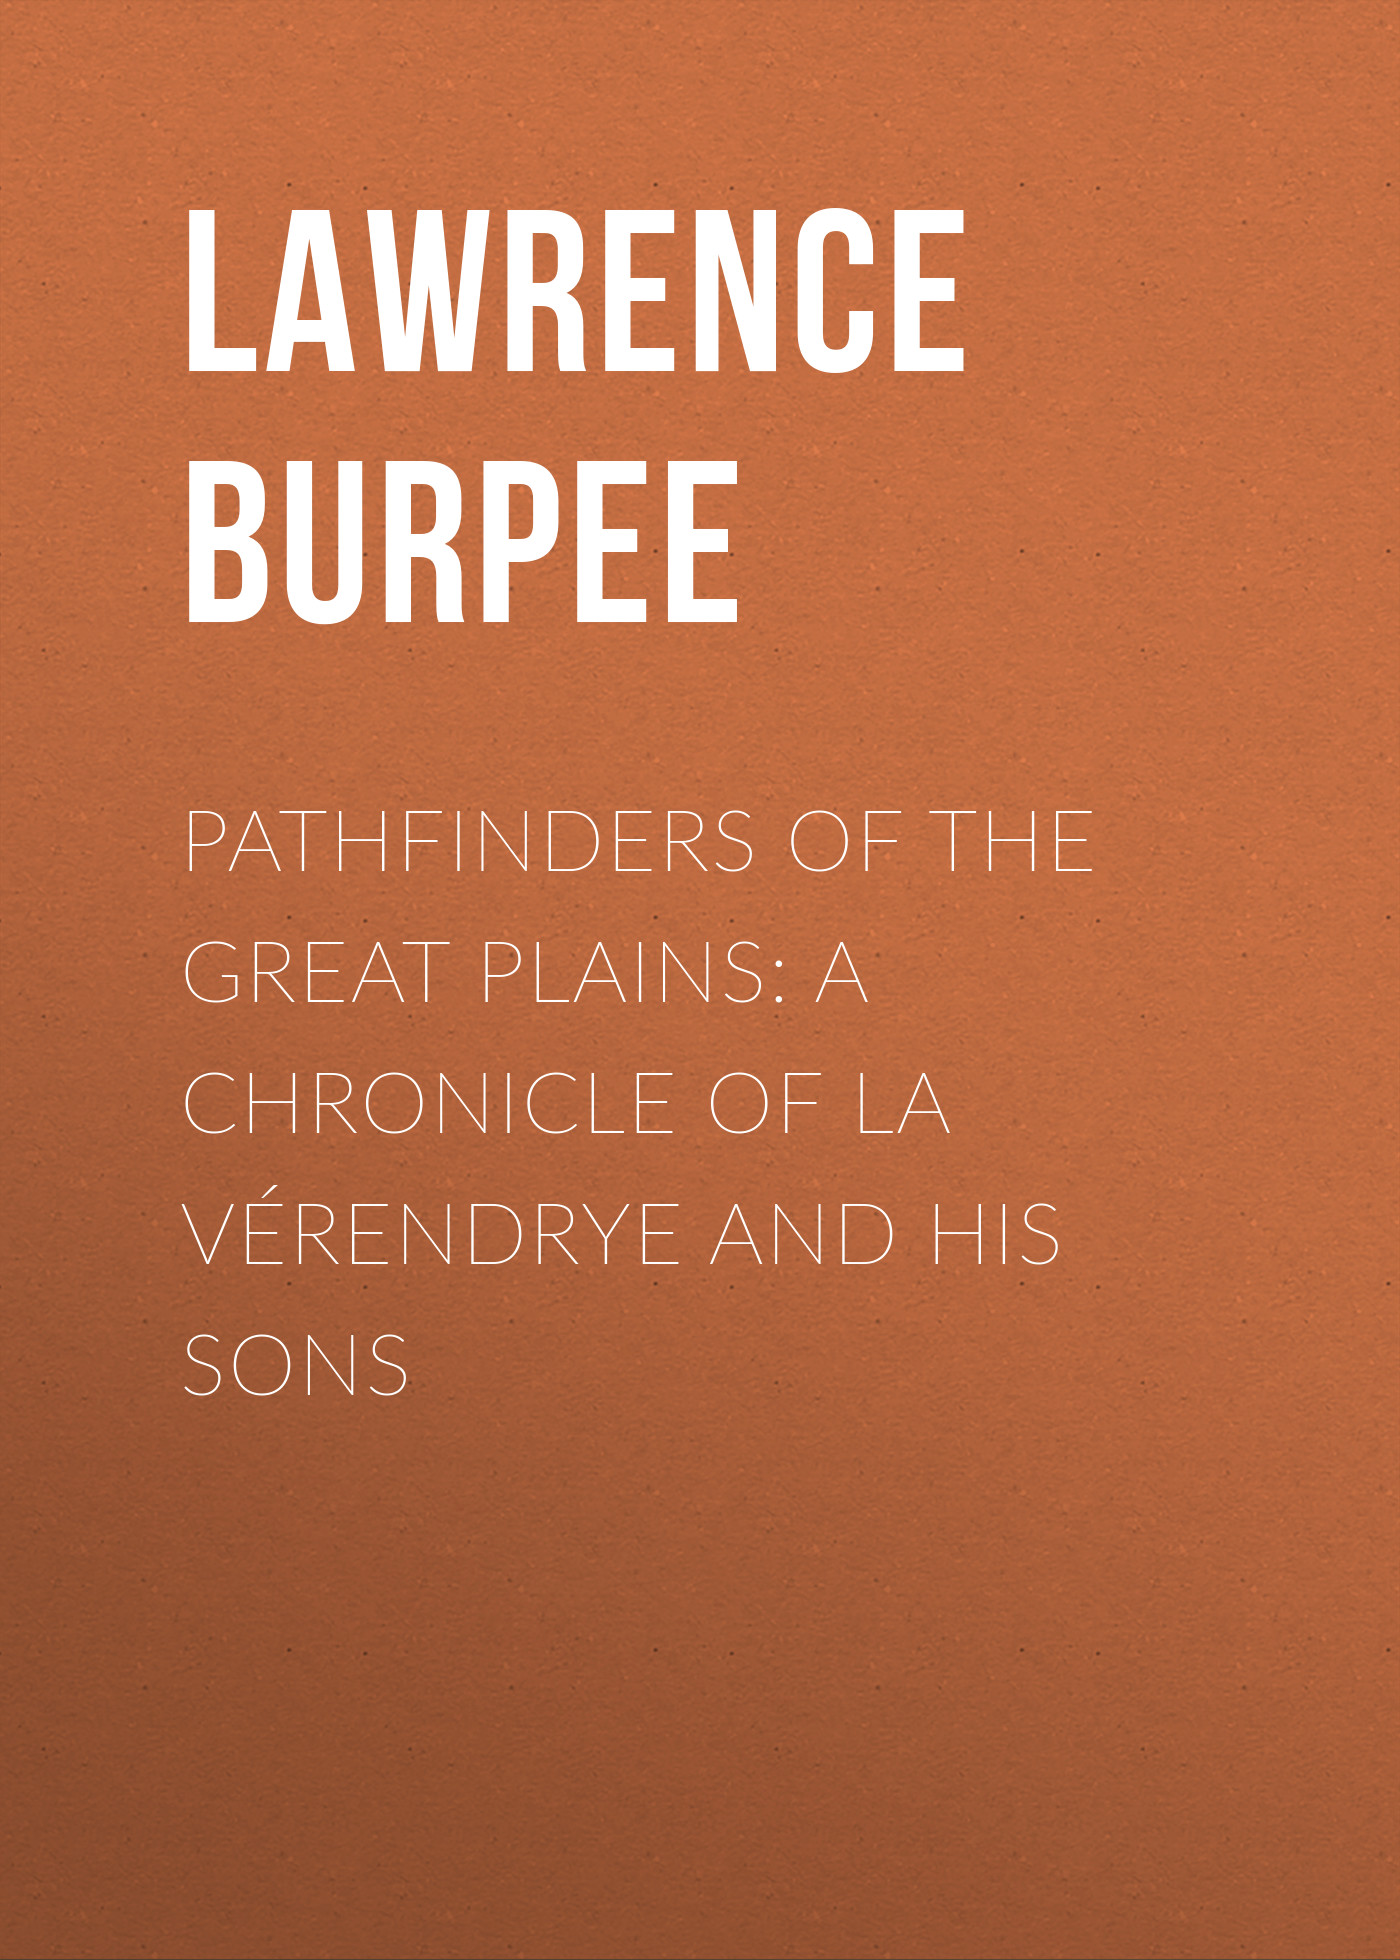 Burpee Lawrence Johnstone Pathfinders of the Great Plains: A Chronicle of La Vérendrye and his Sons